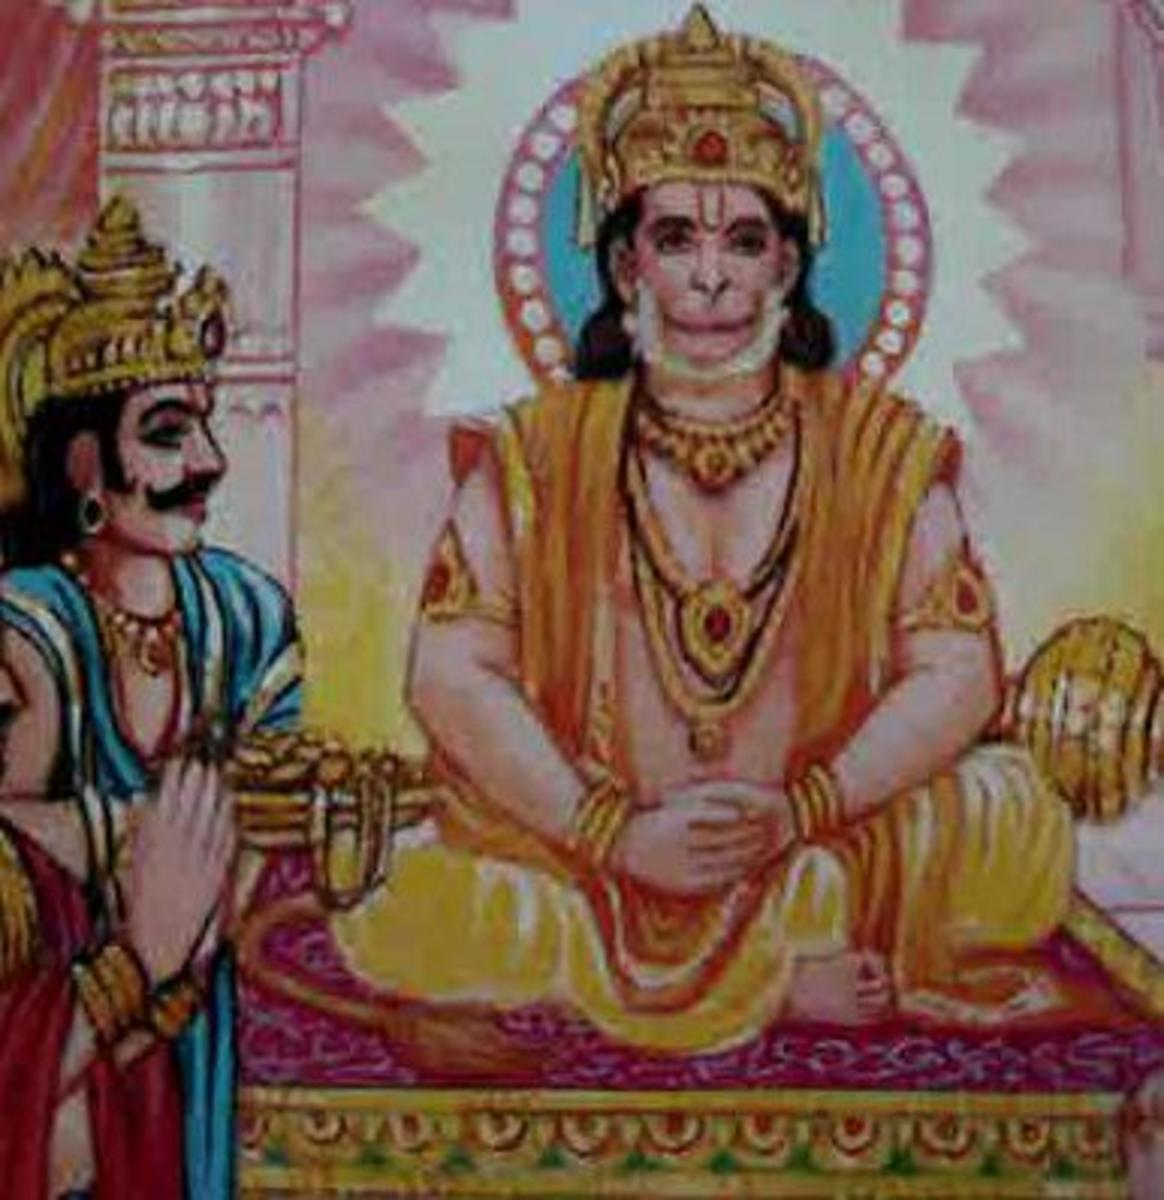 Picture depicting verse 17 of the Hanuman Chalisa